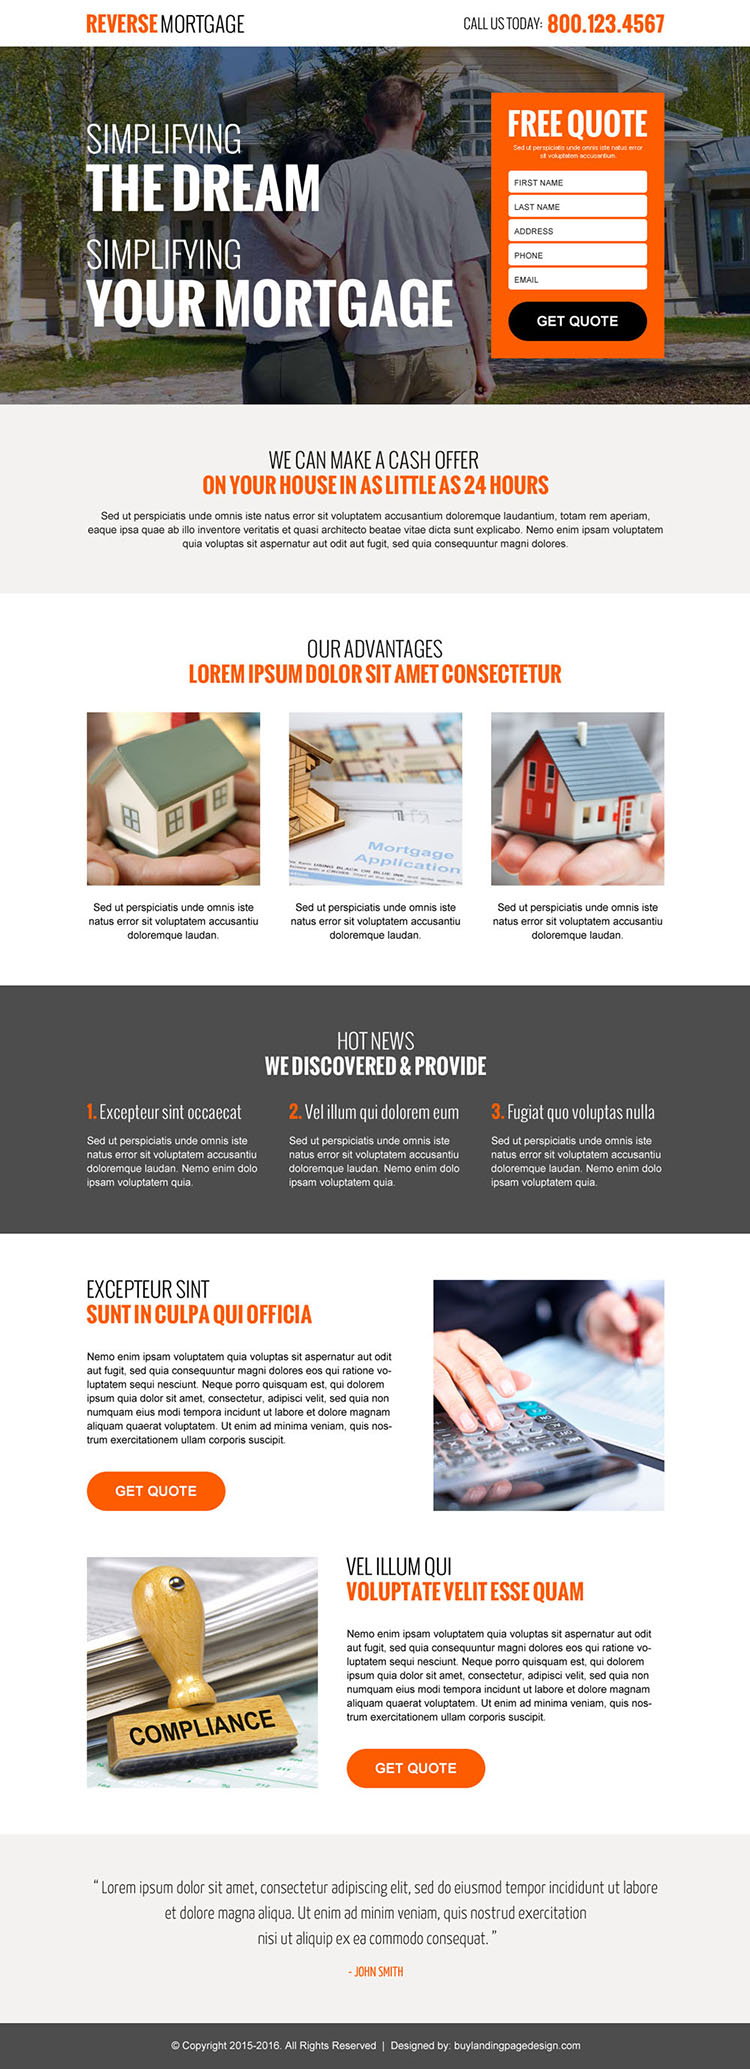 reverse mortgage free quote lead gen landing page design template